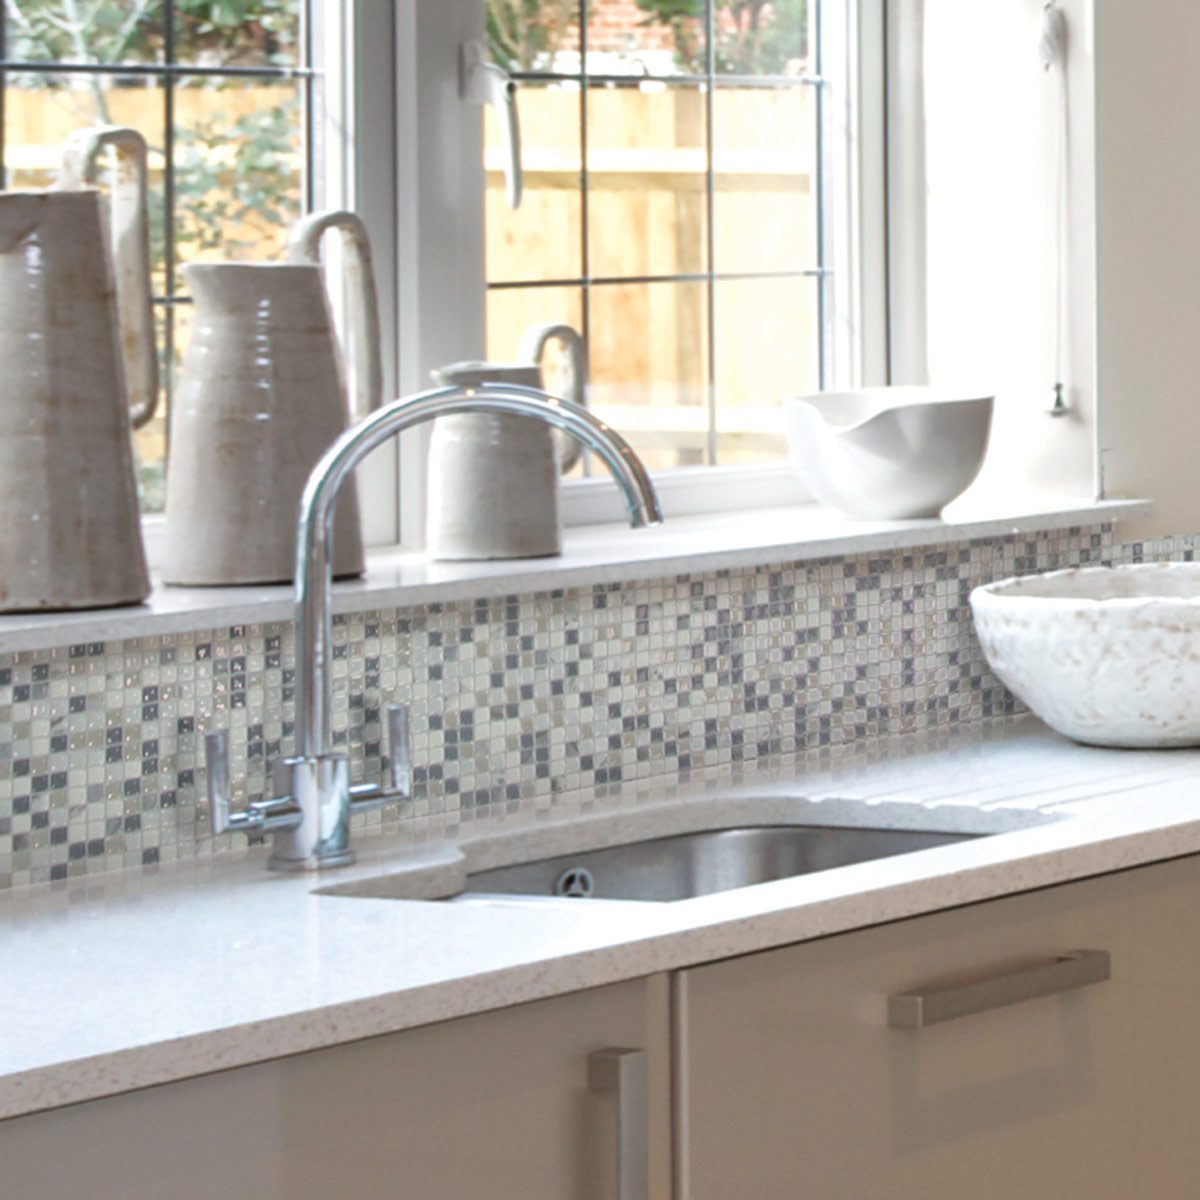 Backsplash Behind Sink The 30 Backsplash Ideas Your Kitchen Can T Live Without The